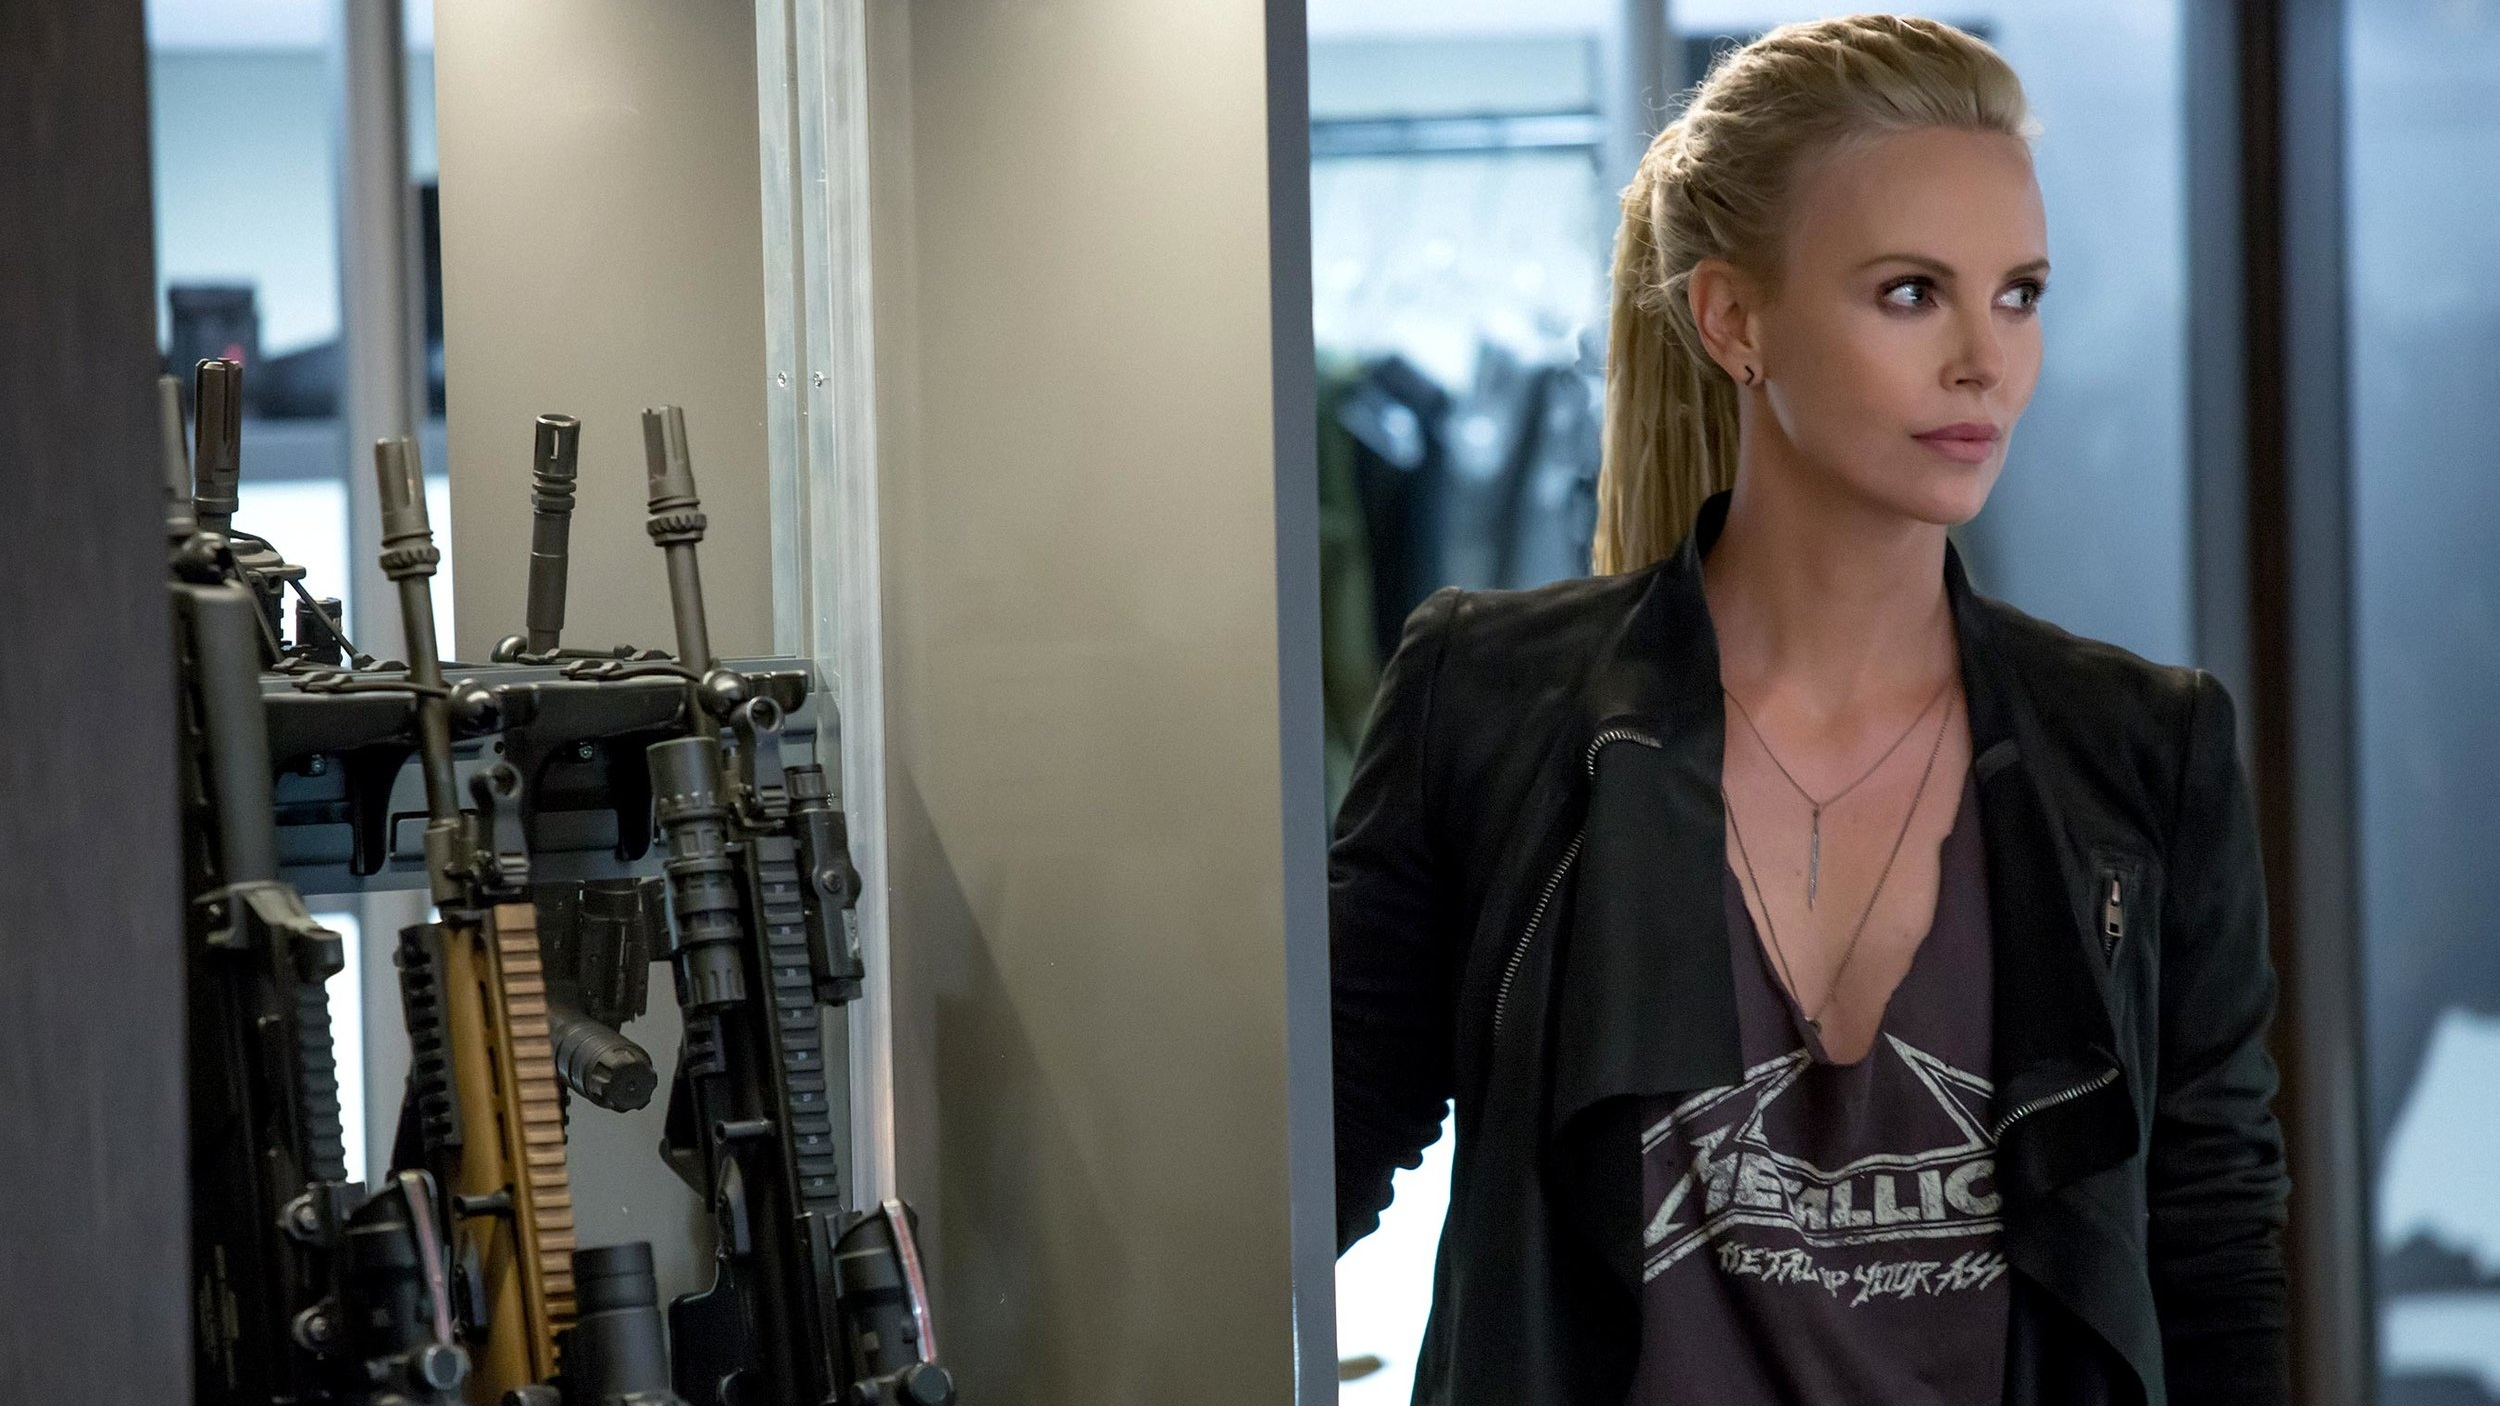 charlize+theron+fate+of+the+furious.jpg